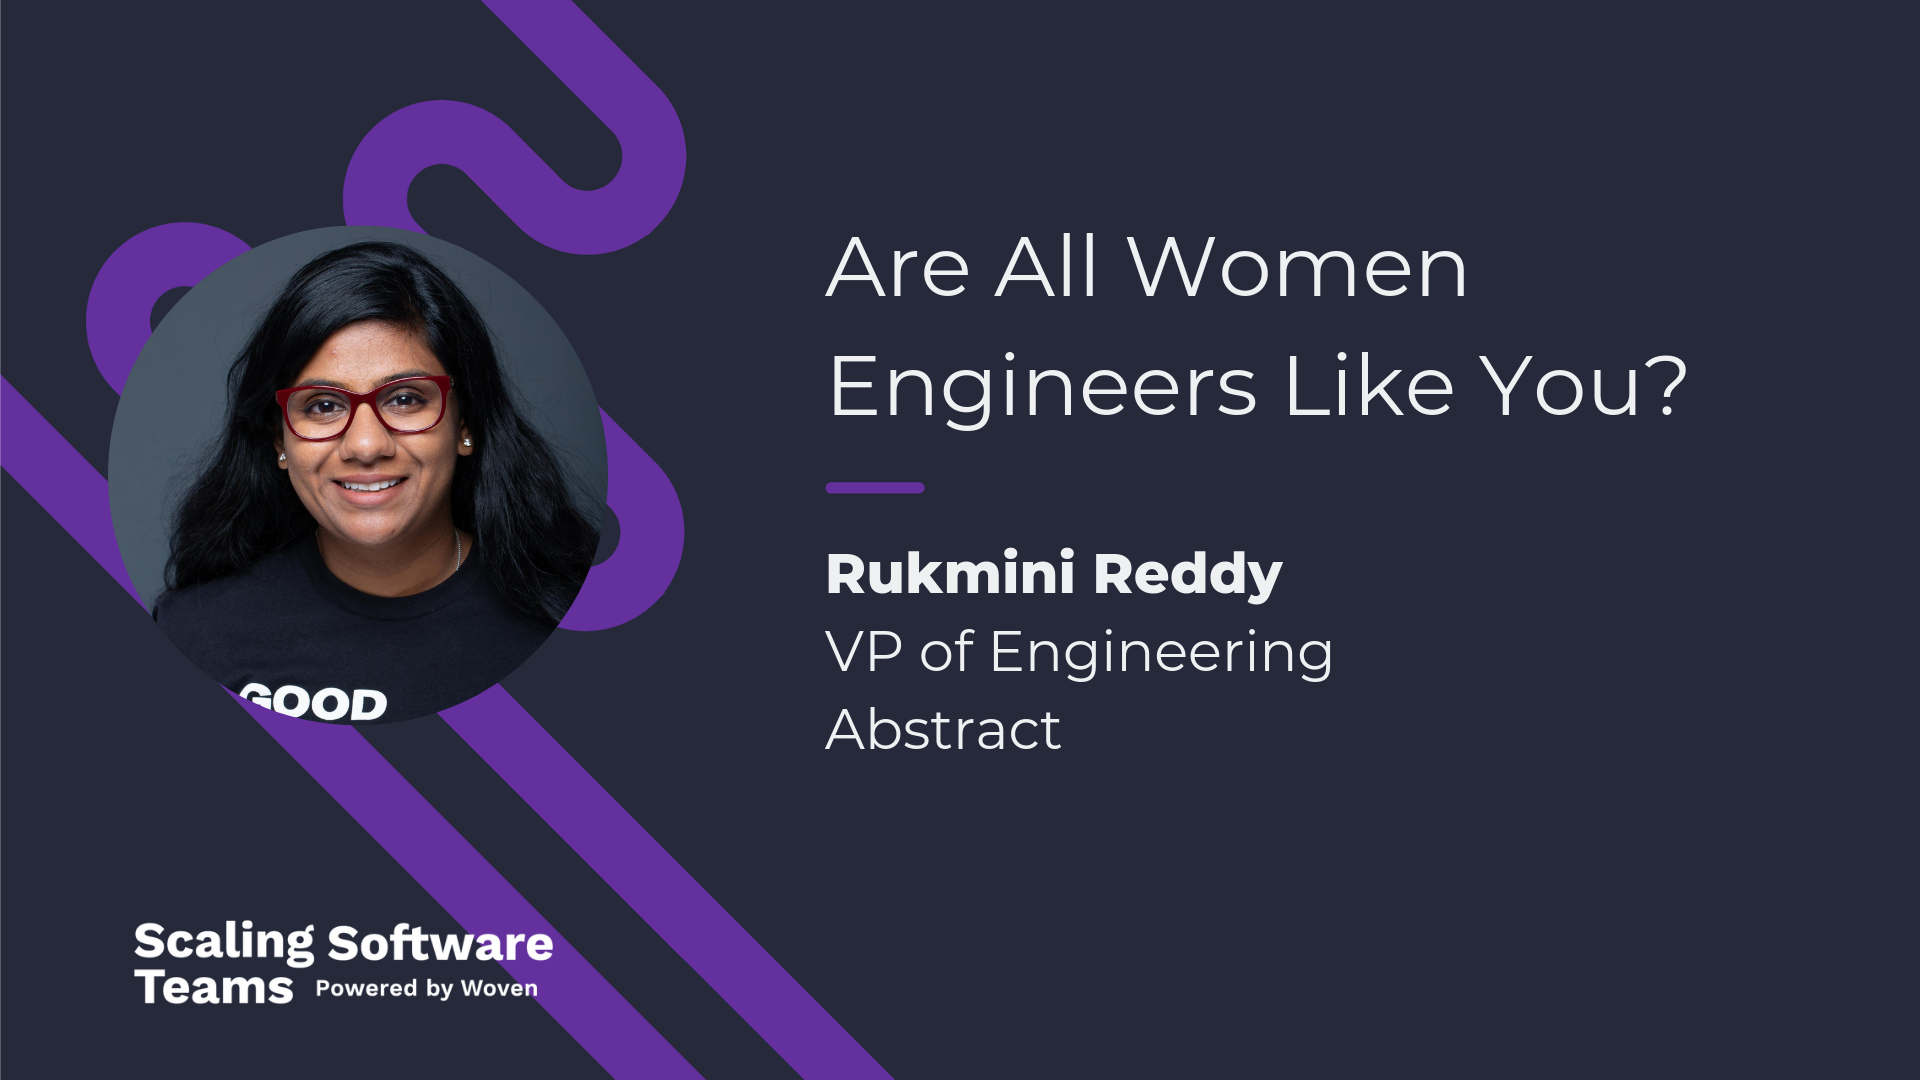 rukmini-reddy-vp-engineering-abstract